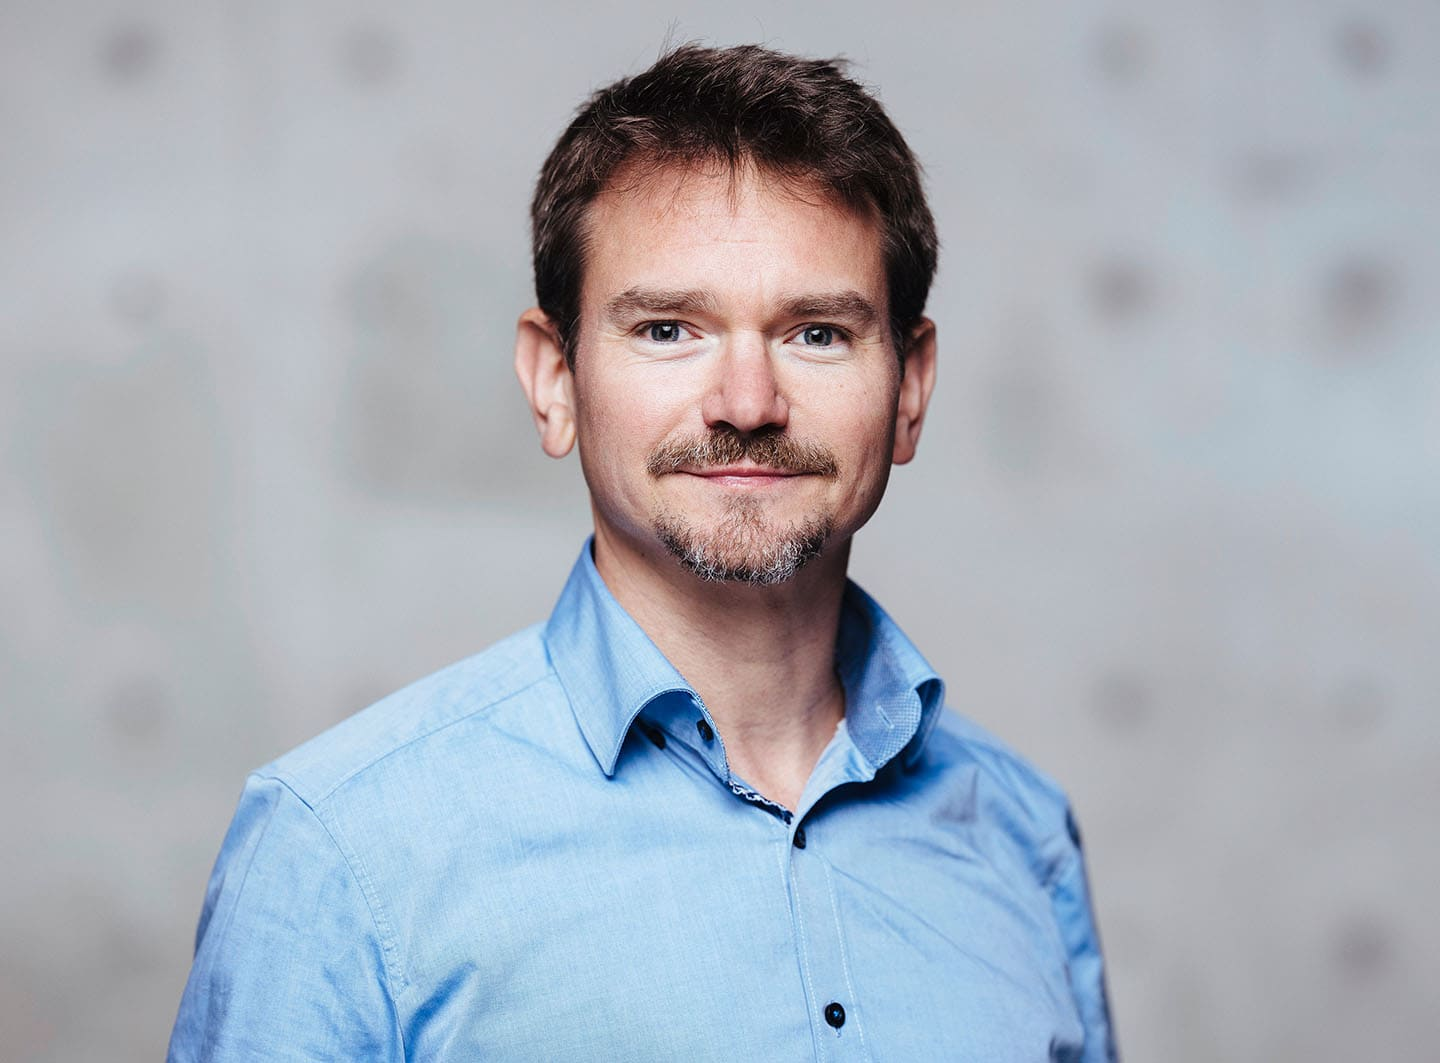 ShareNow-CEO Olivier Reppert. Foto: YourNow